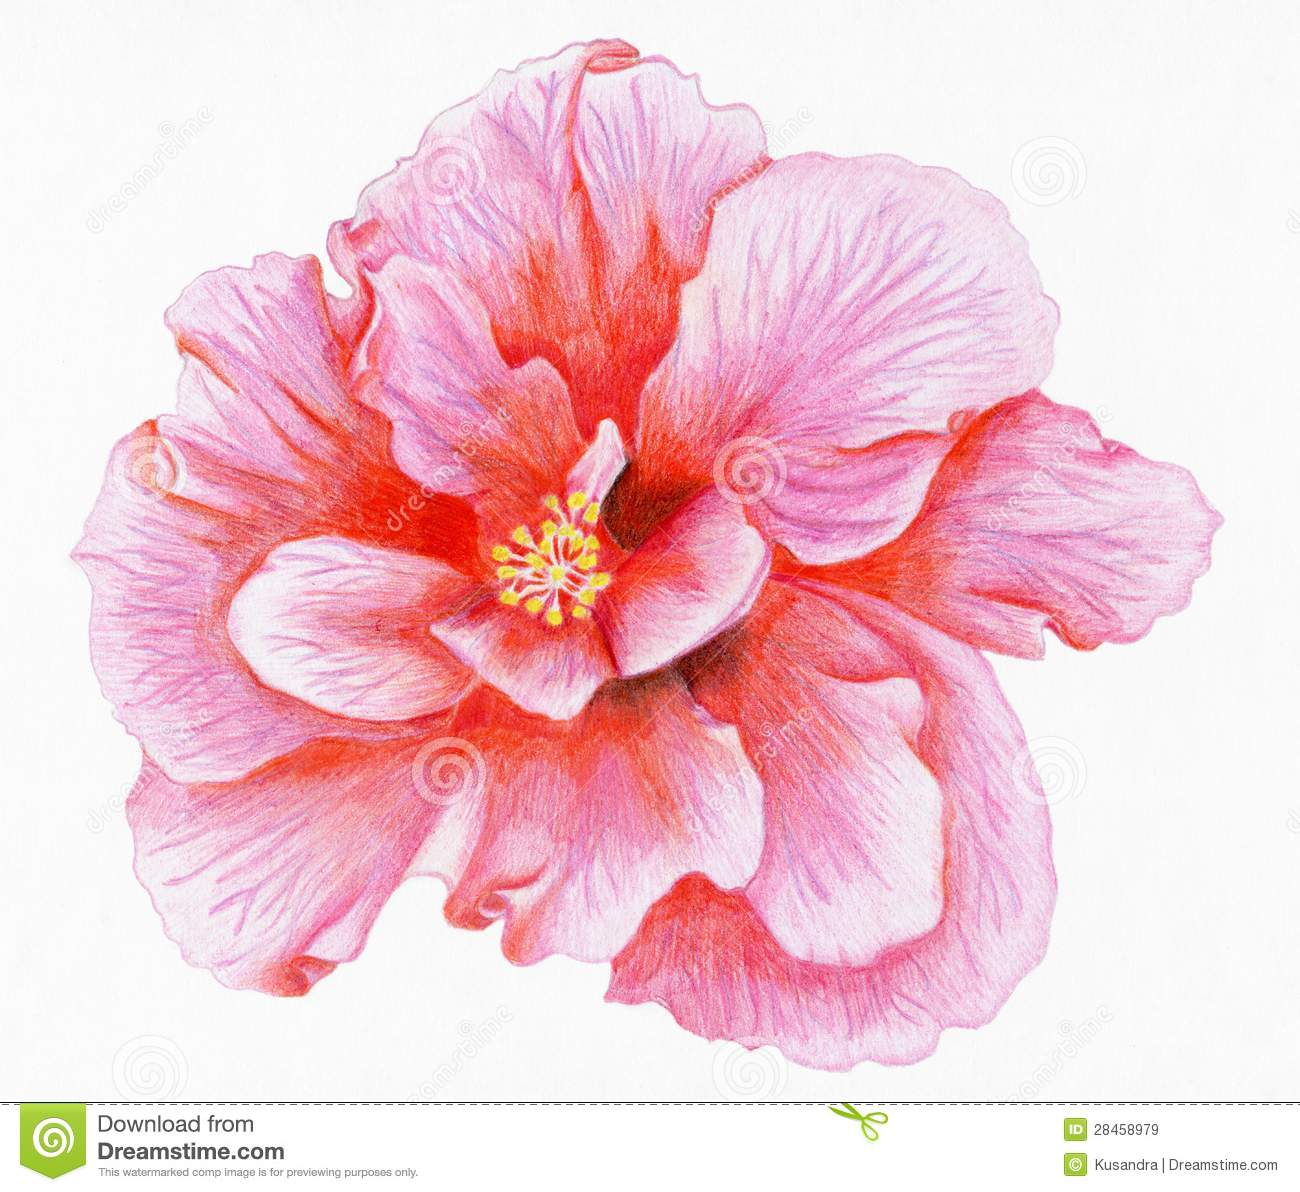 Pink Hibiscus Plant Drawing | www.pixshark.com - Images ...